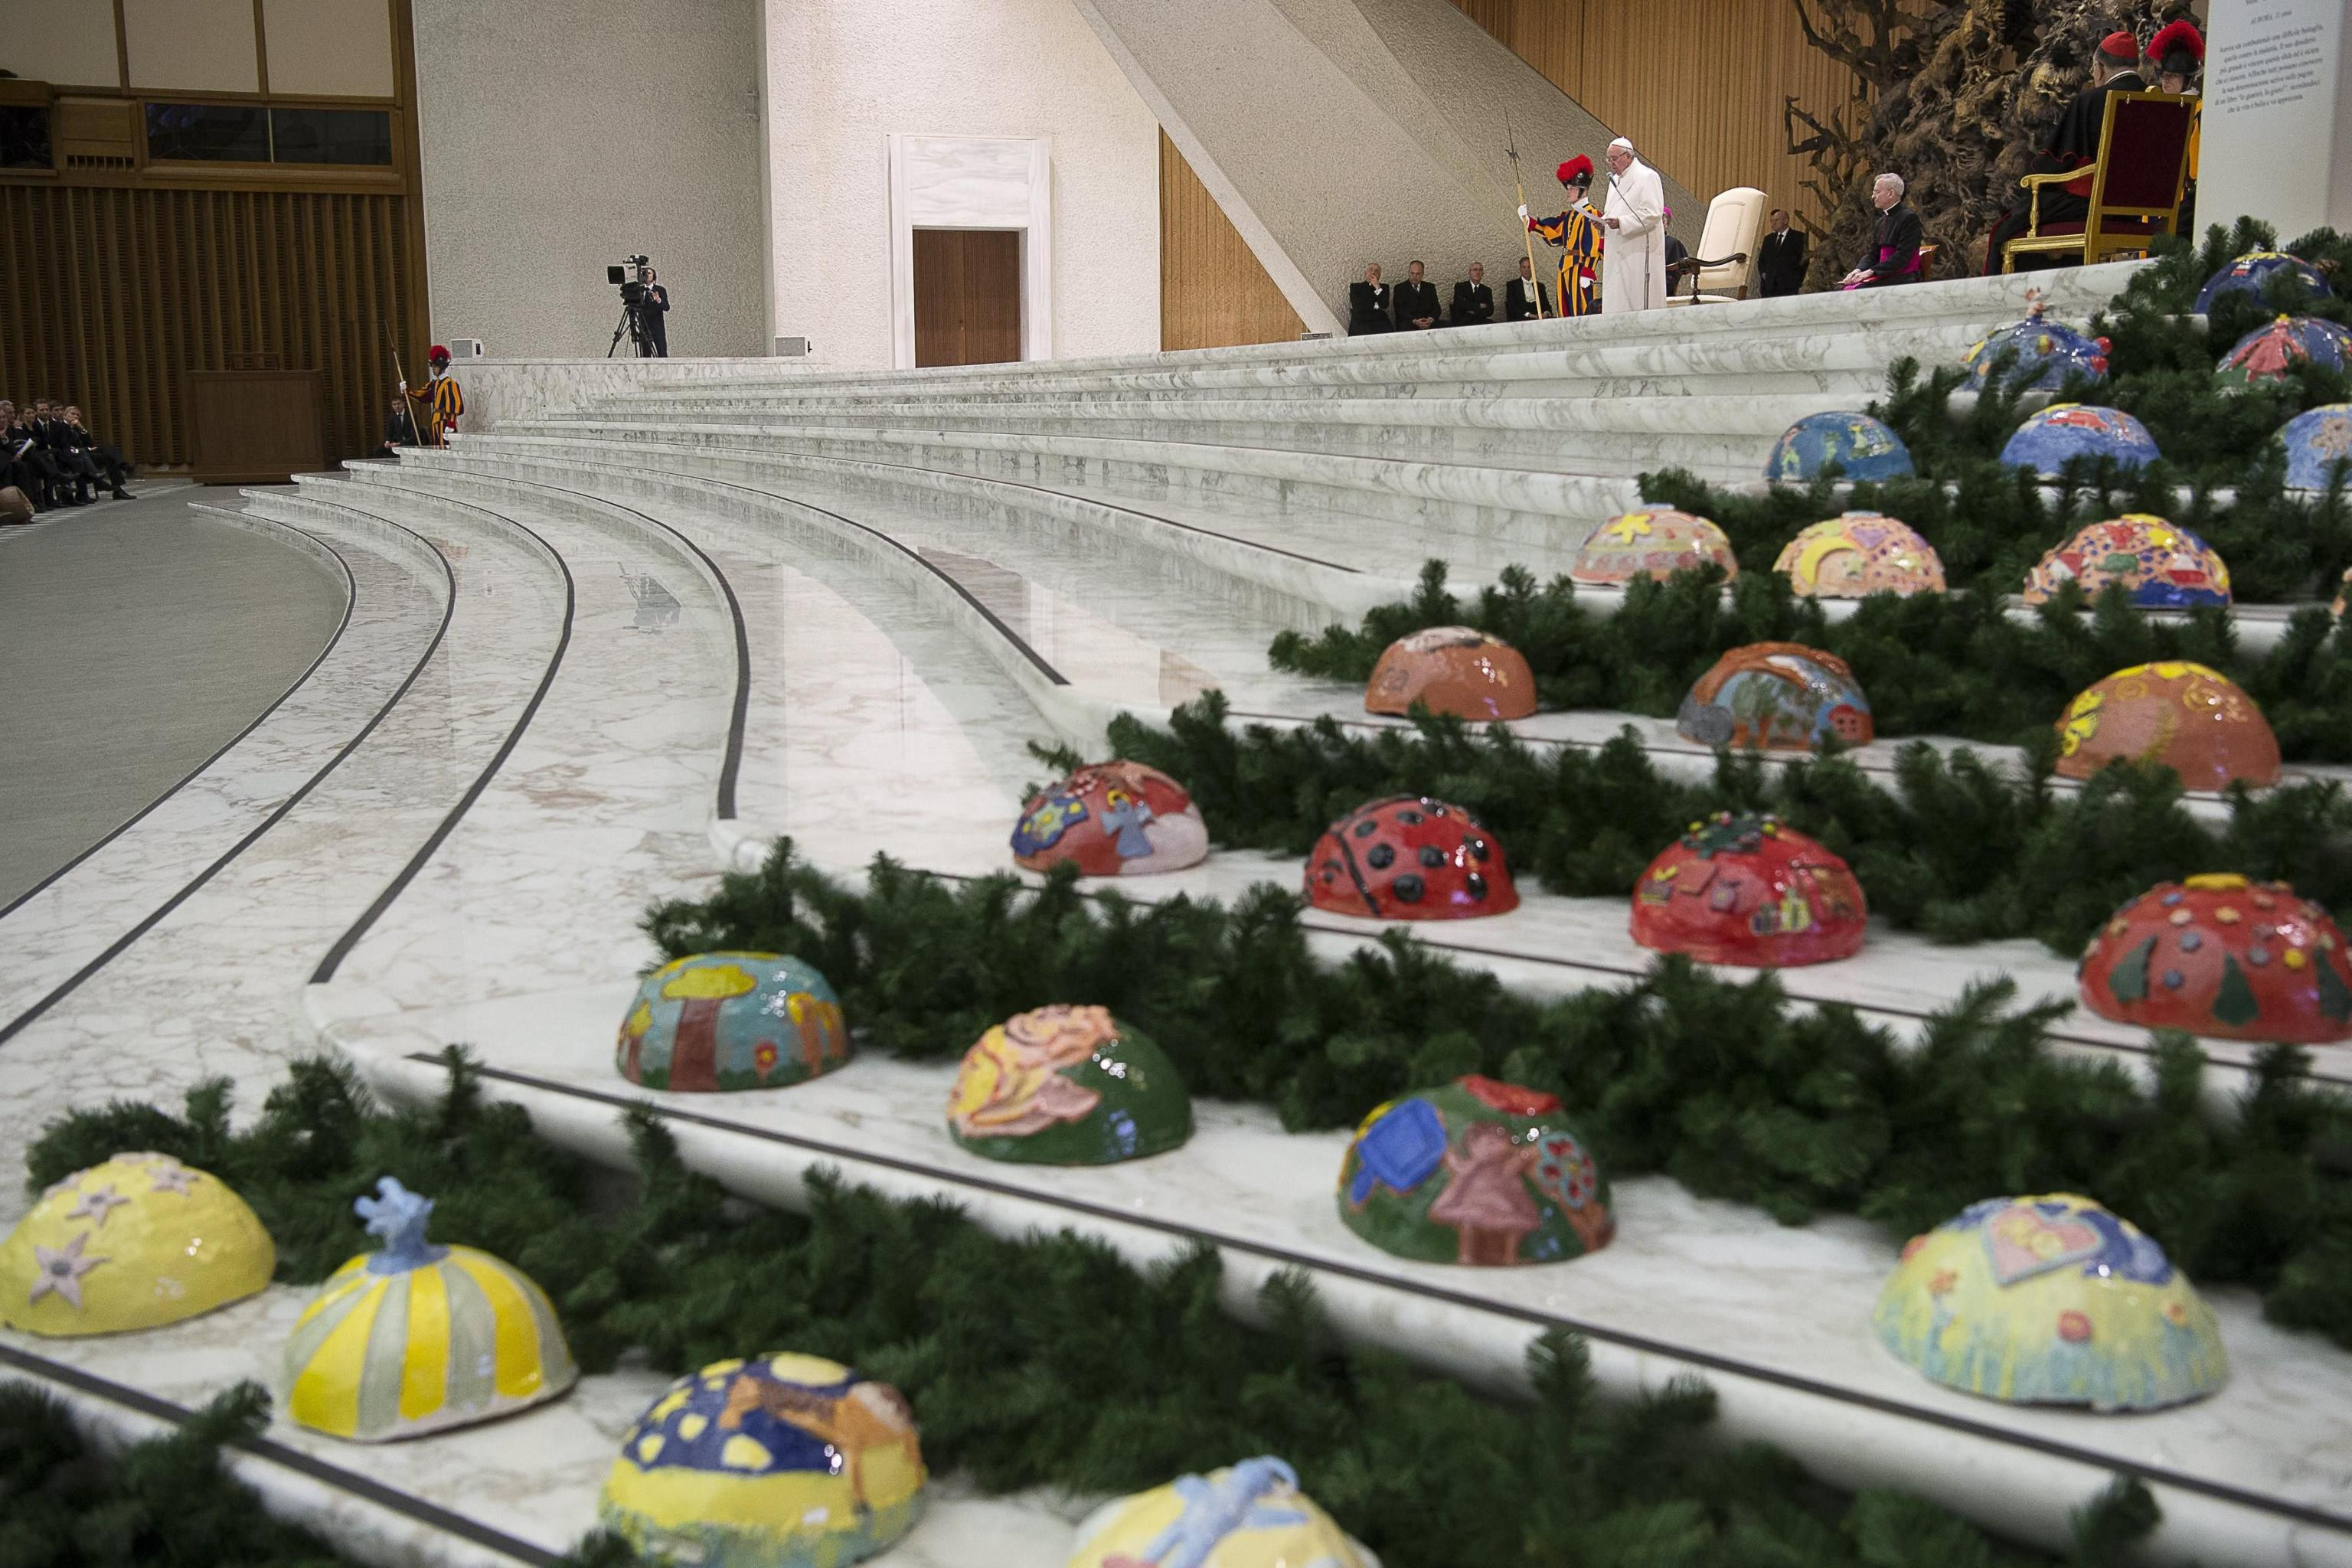 Pope Francis' during the audience to delegations from Bavaria and Trentino